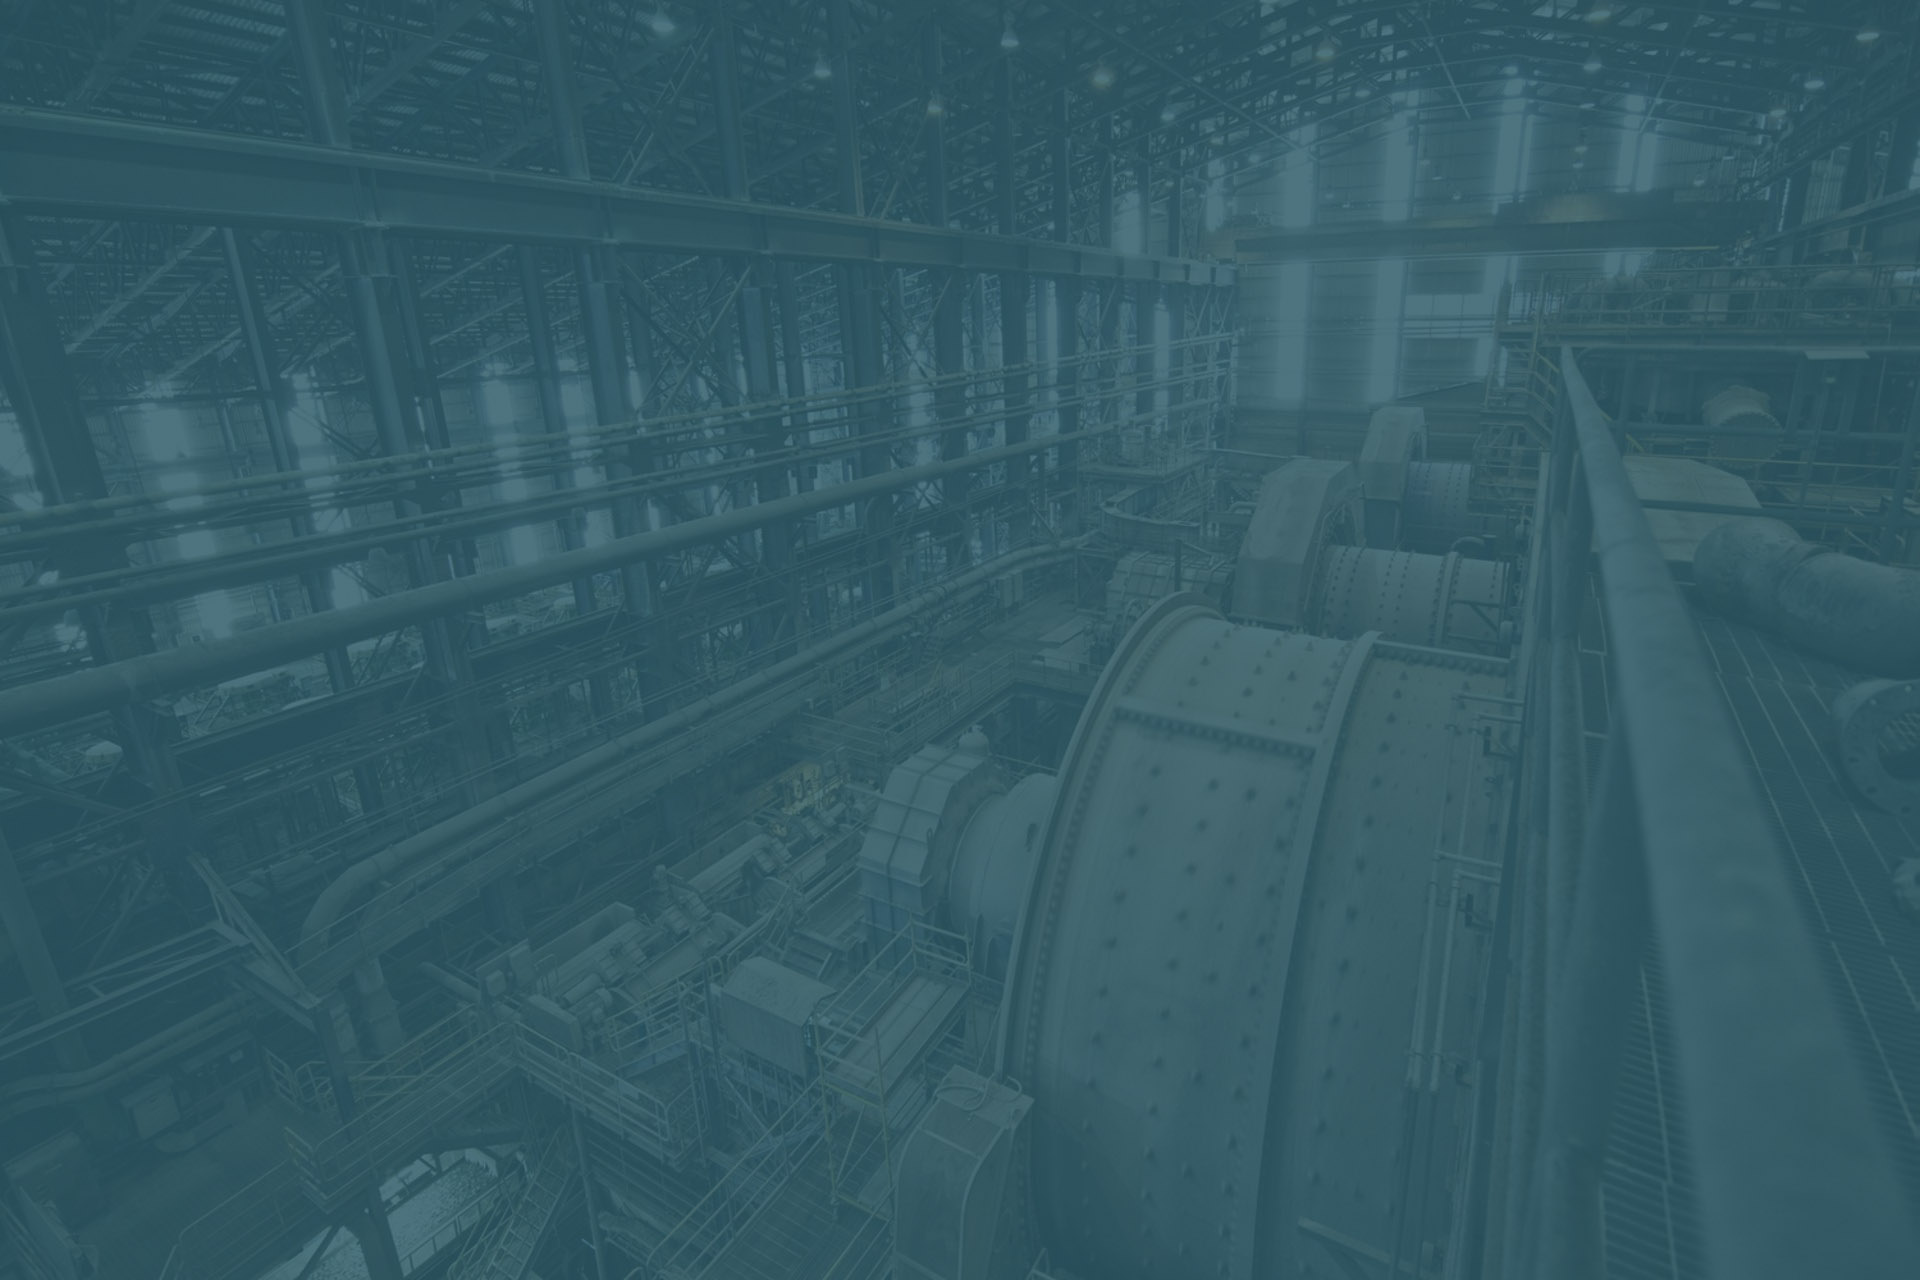 Industrial Quick Search | Industrial Supply | Manufacturing